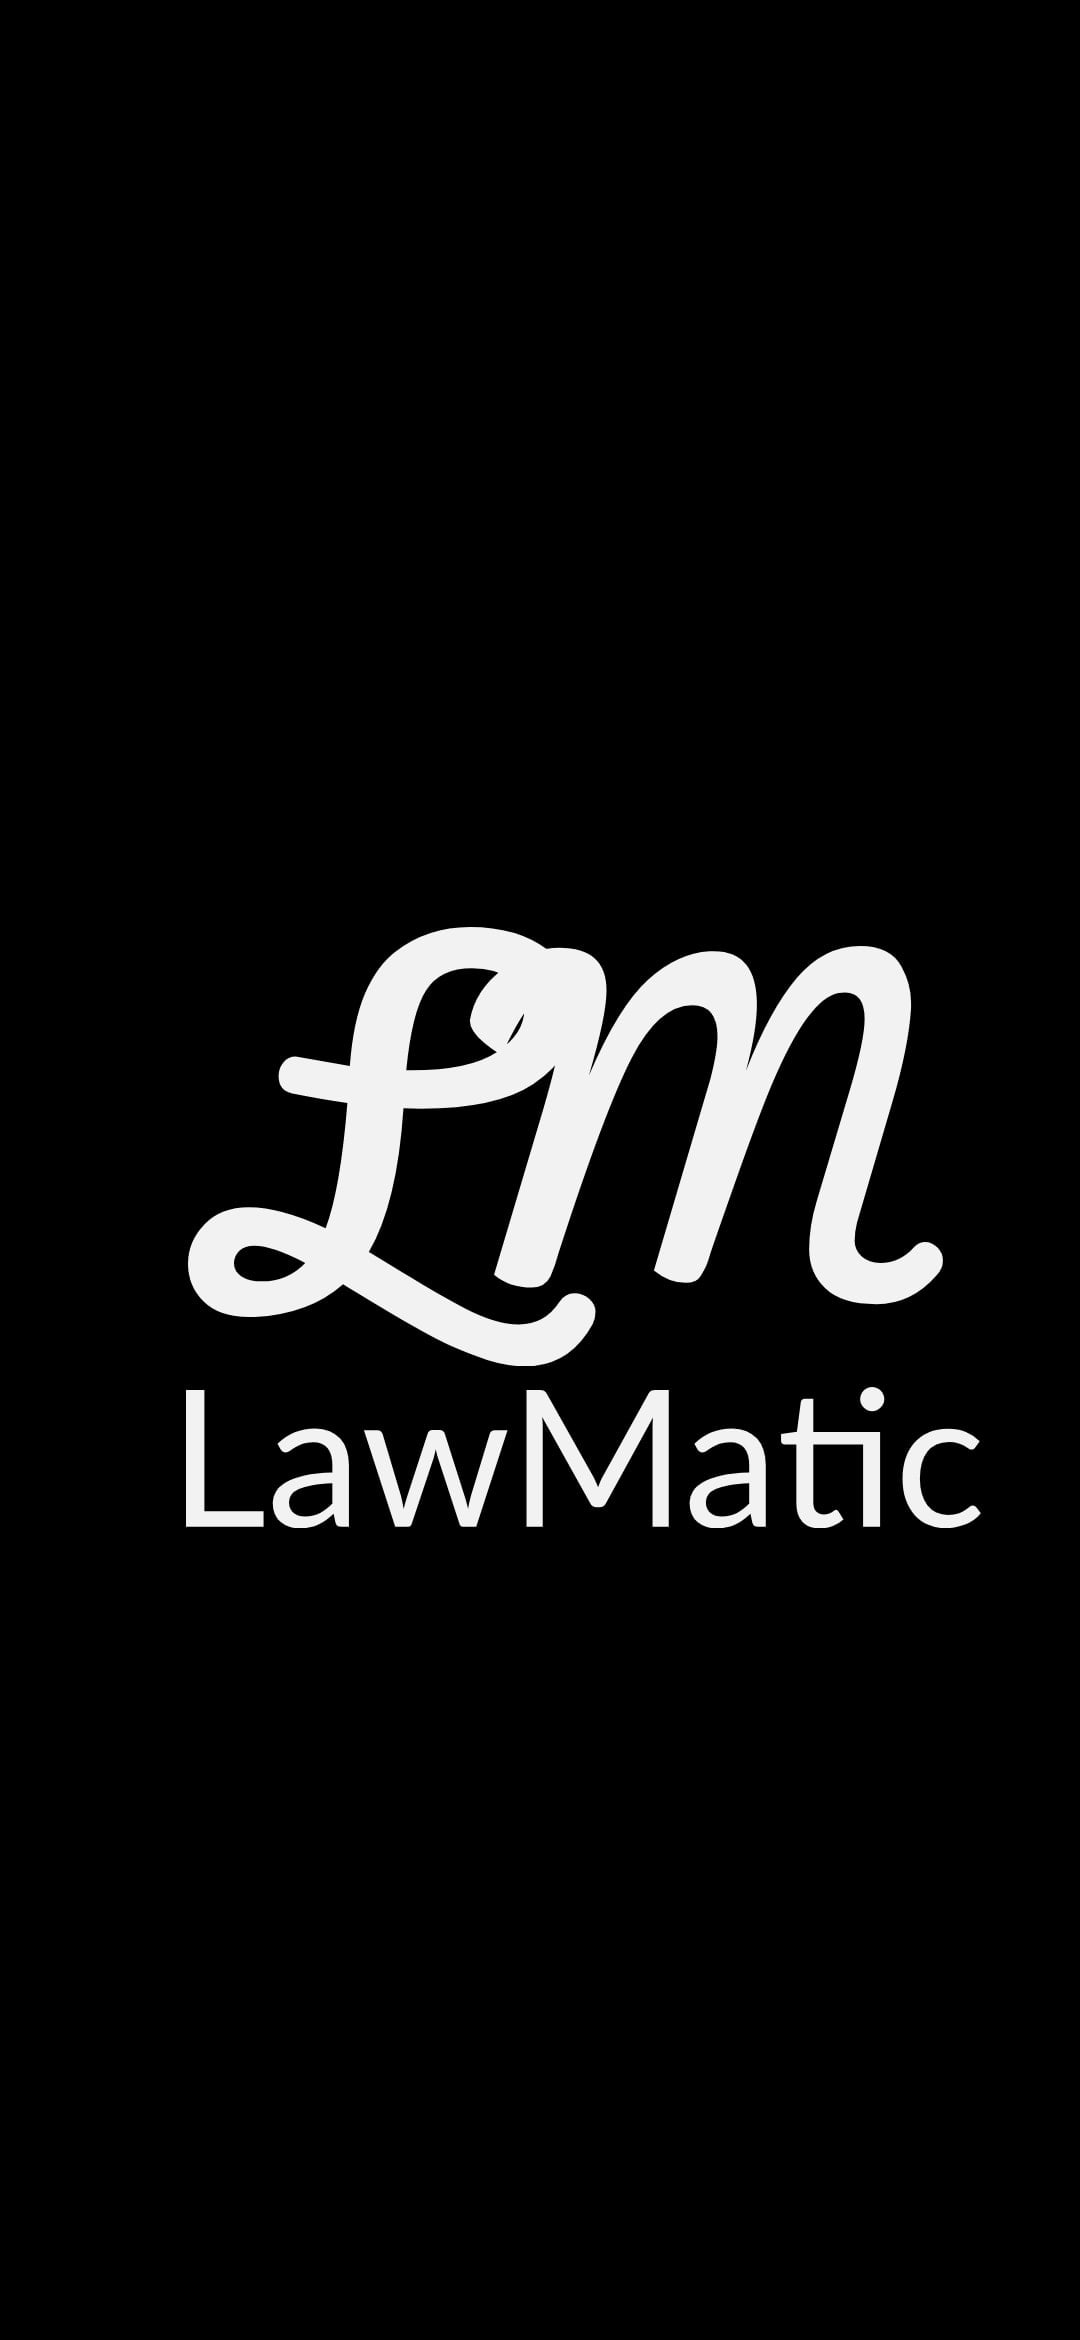 Lawmatics